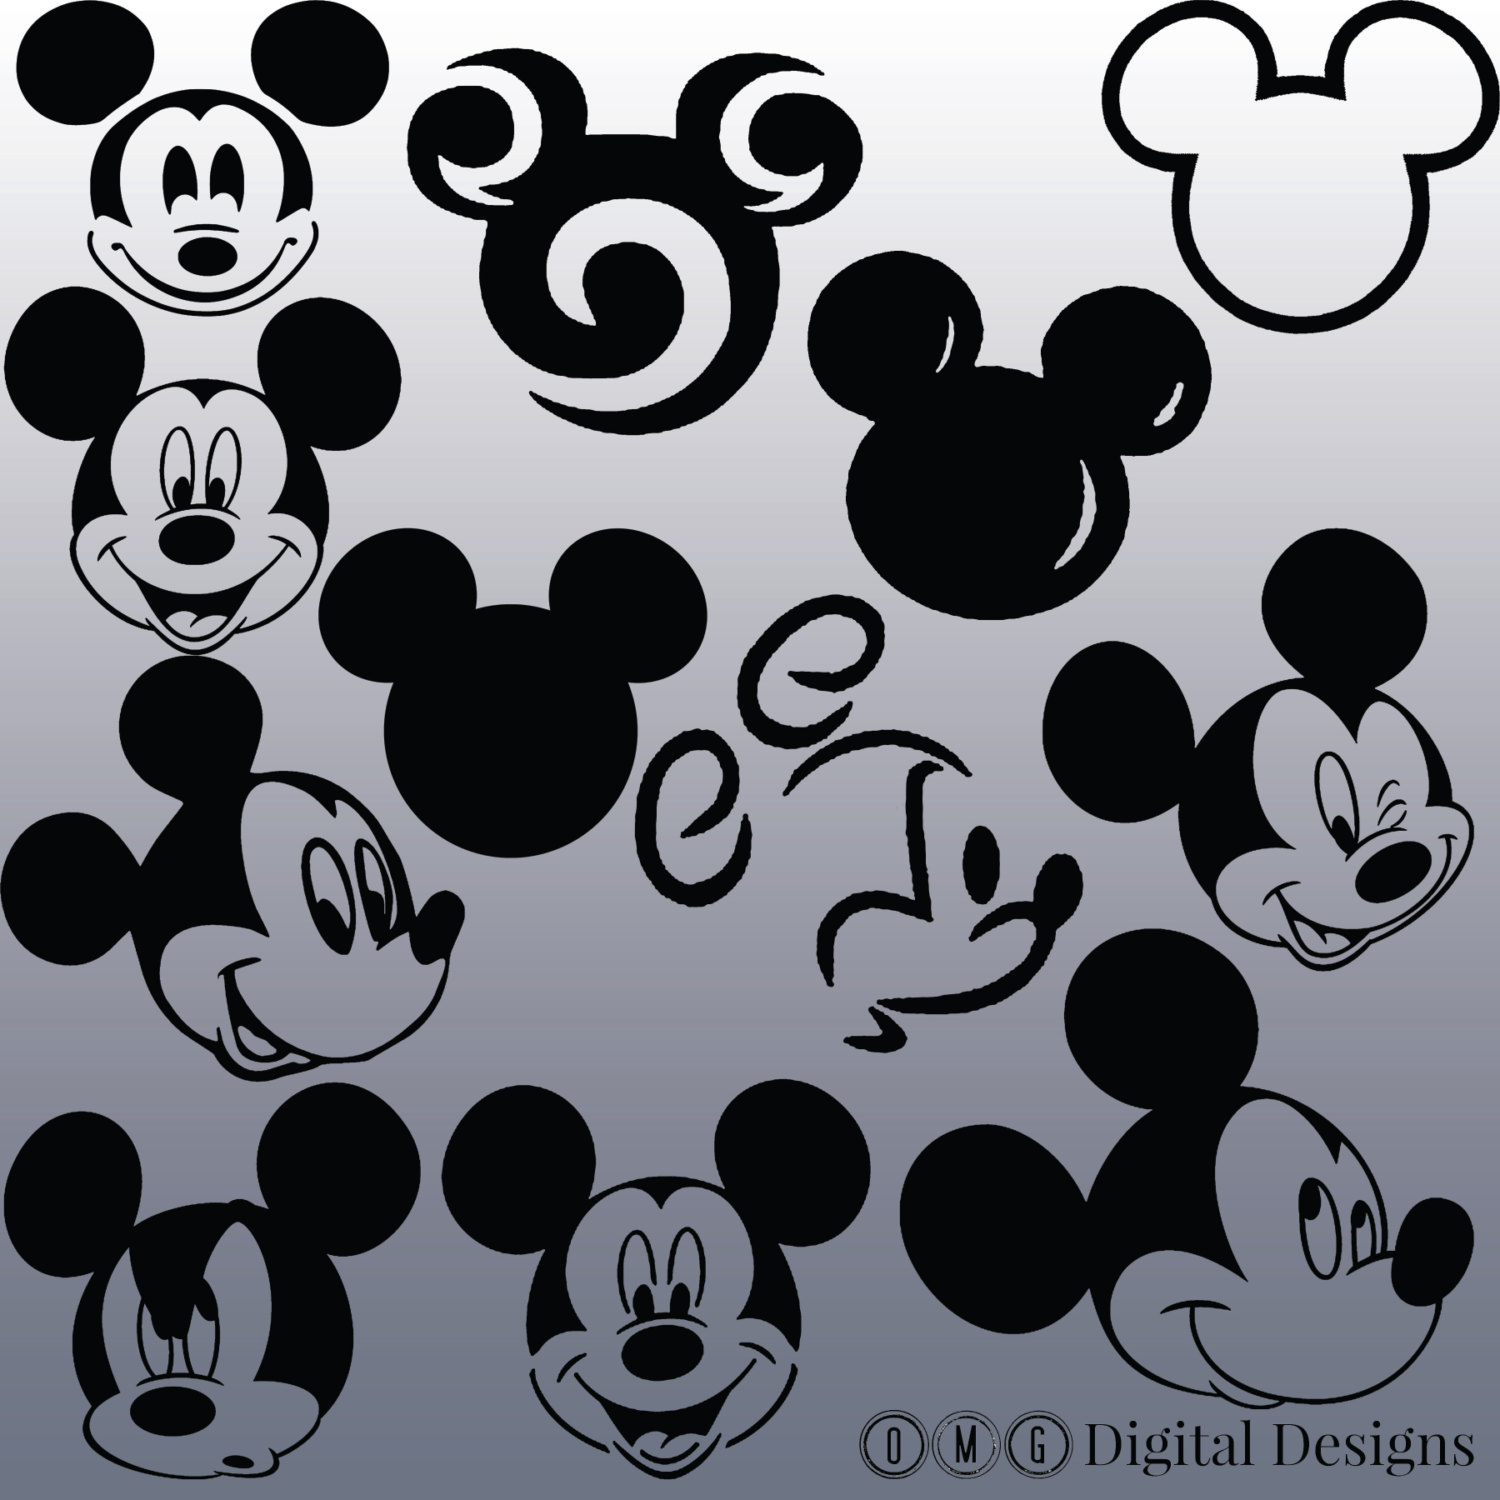 12 Mickey Mouse Head Silhouette Clipart Images, Clipart Design.